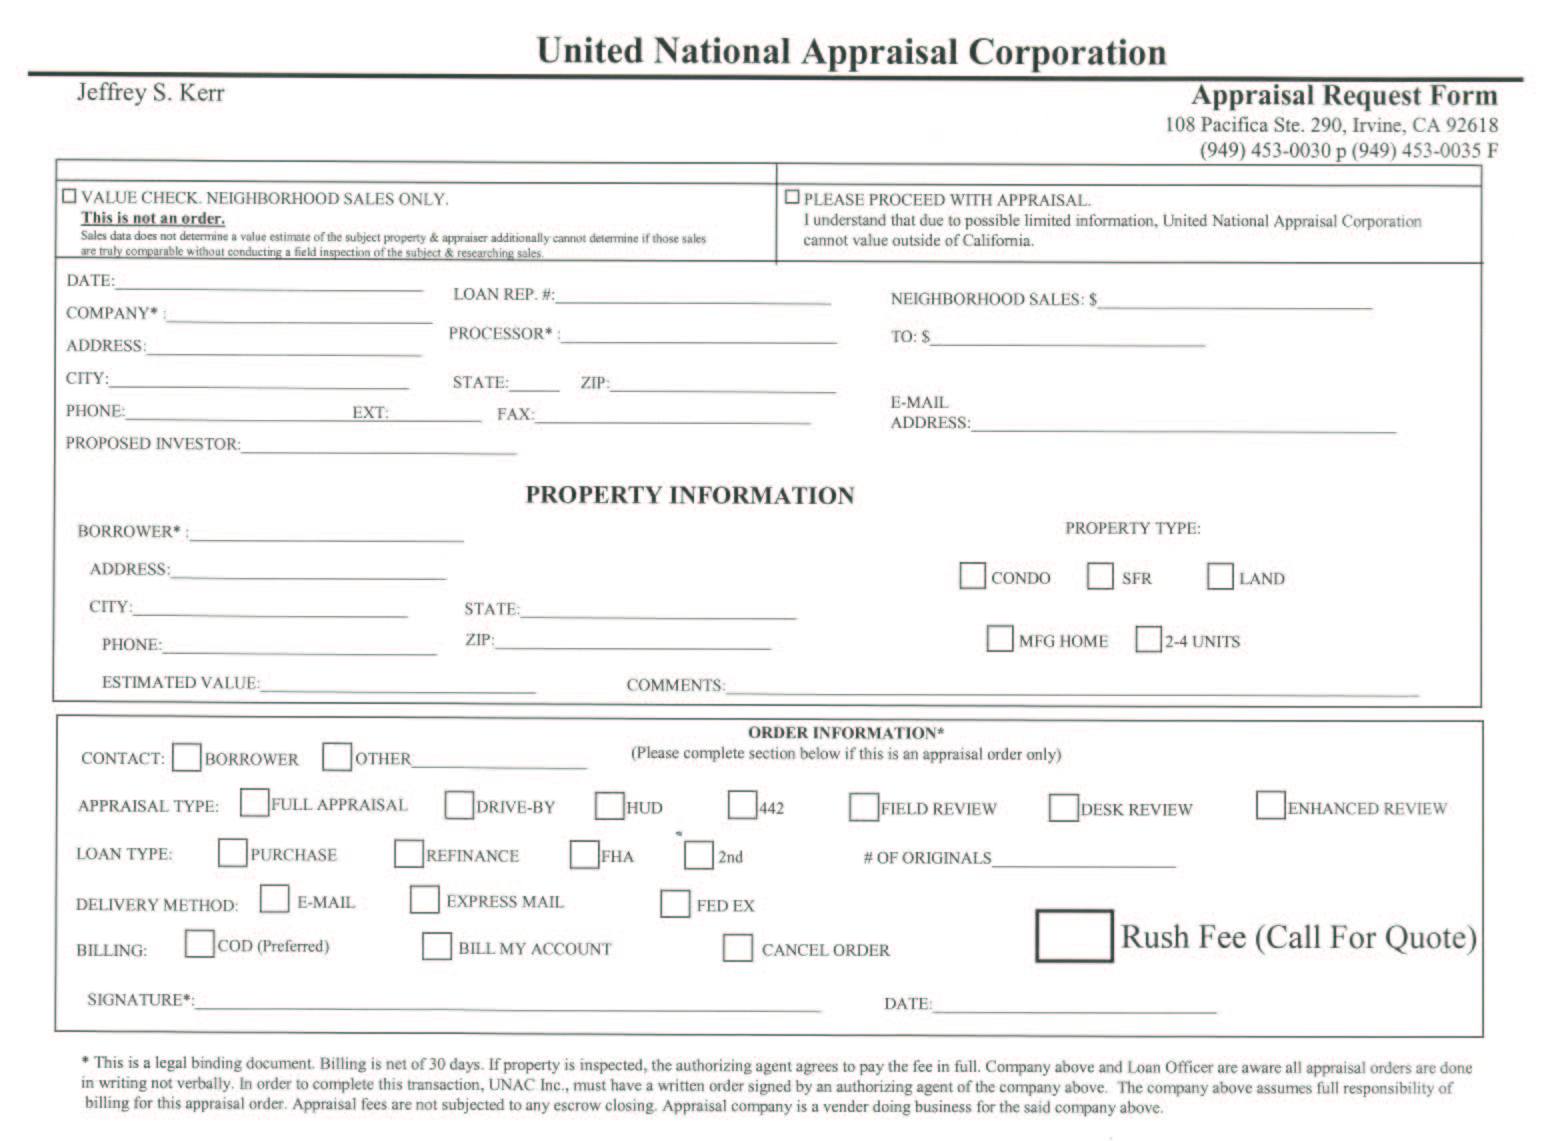 Real estate appraisal services offered by United National